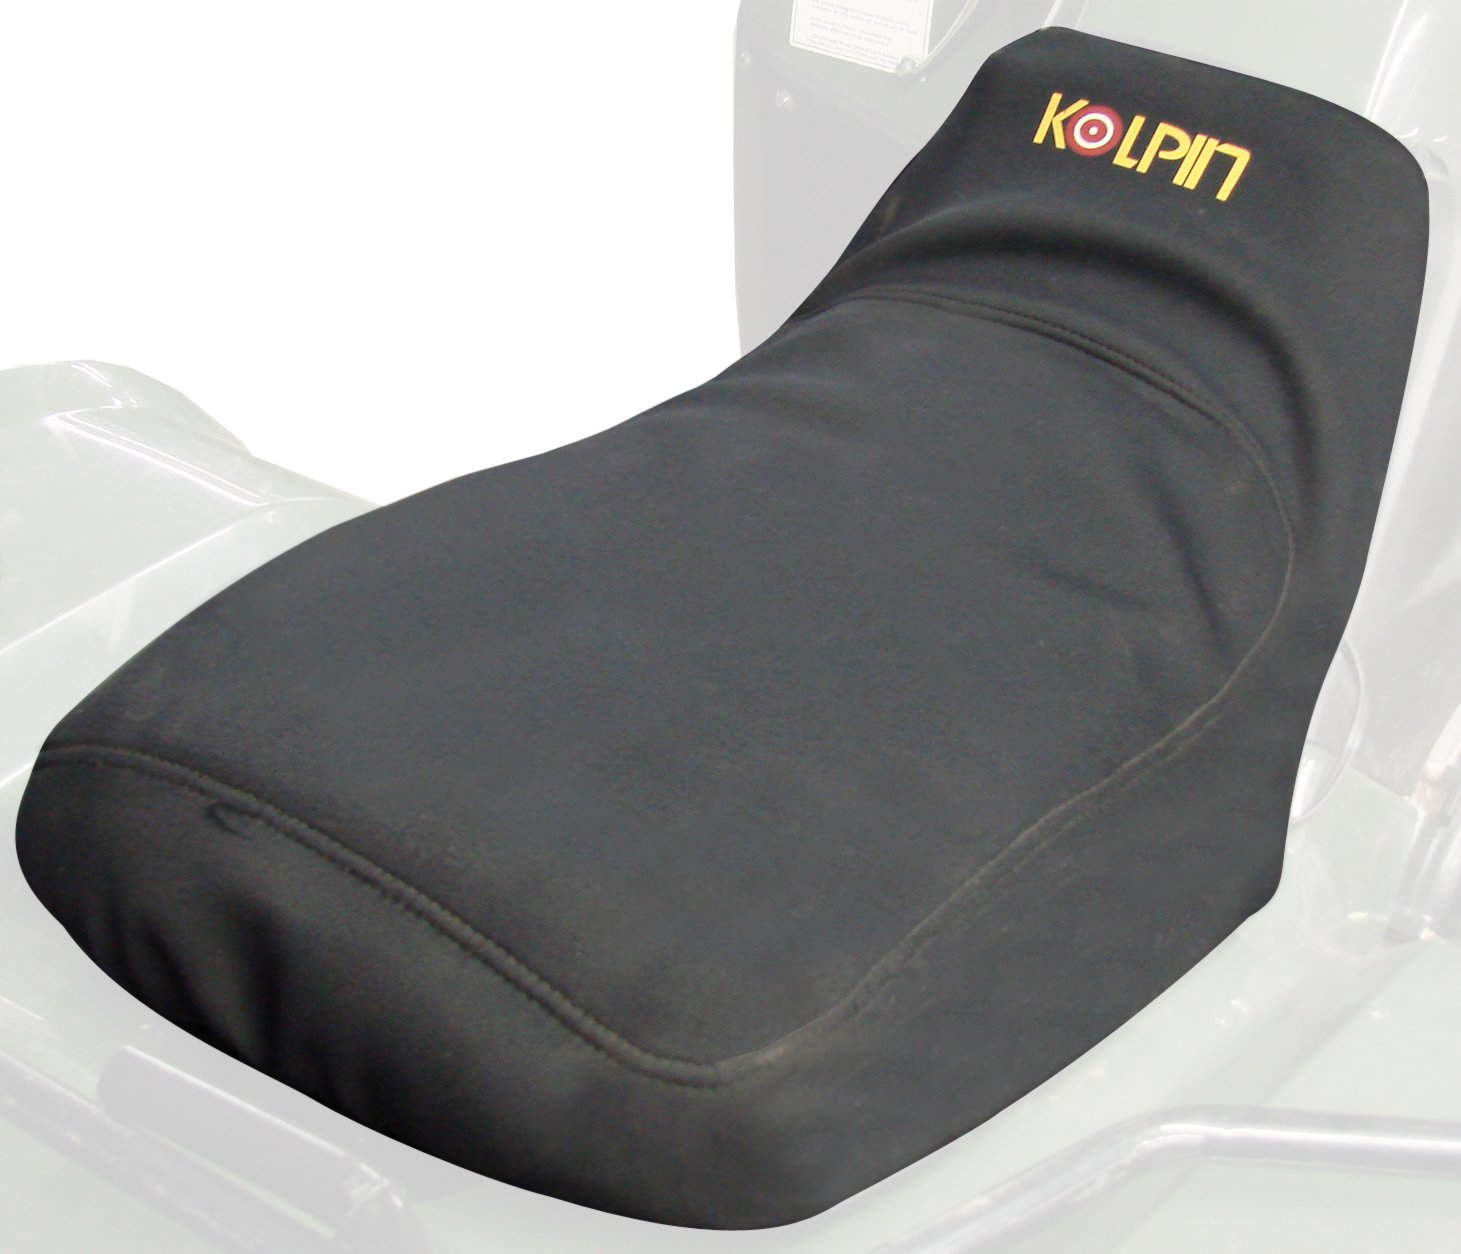 Kolpin Seat Cover - Black - 93645